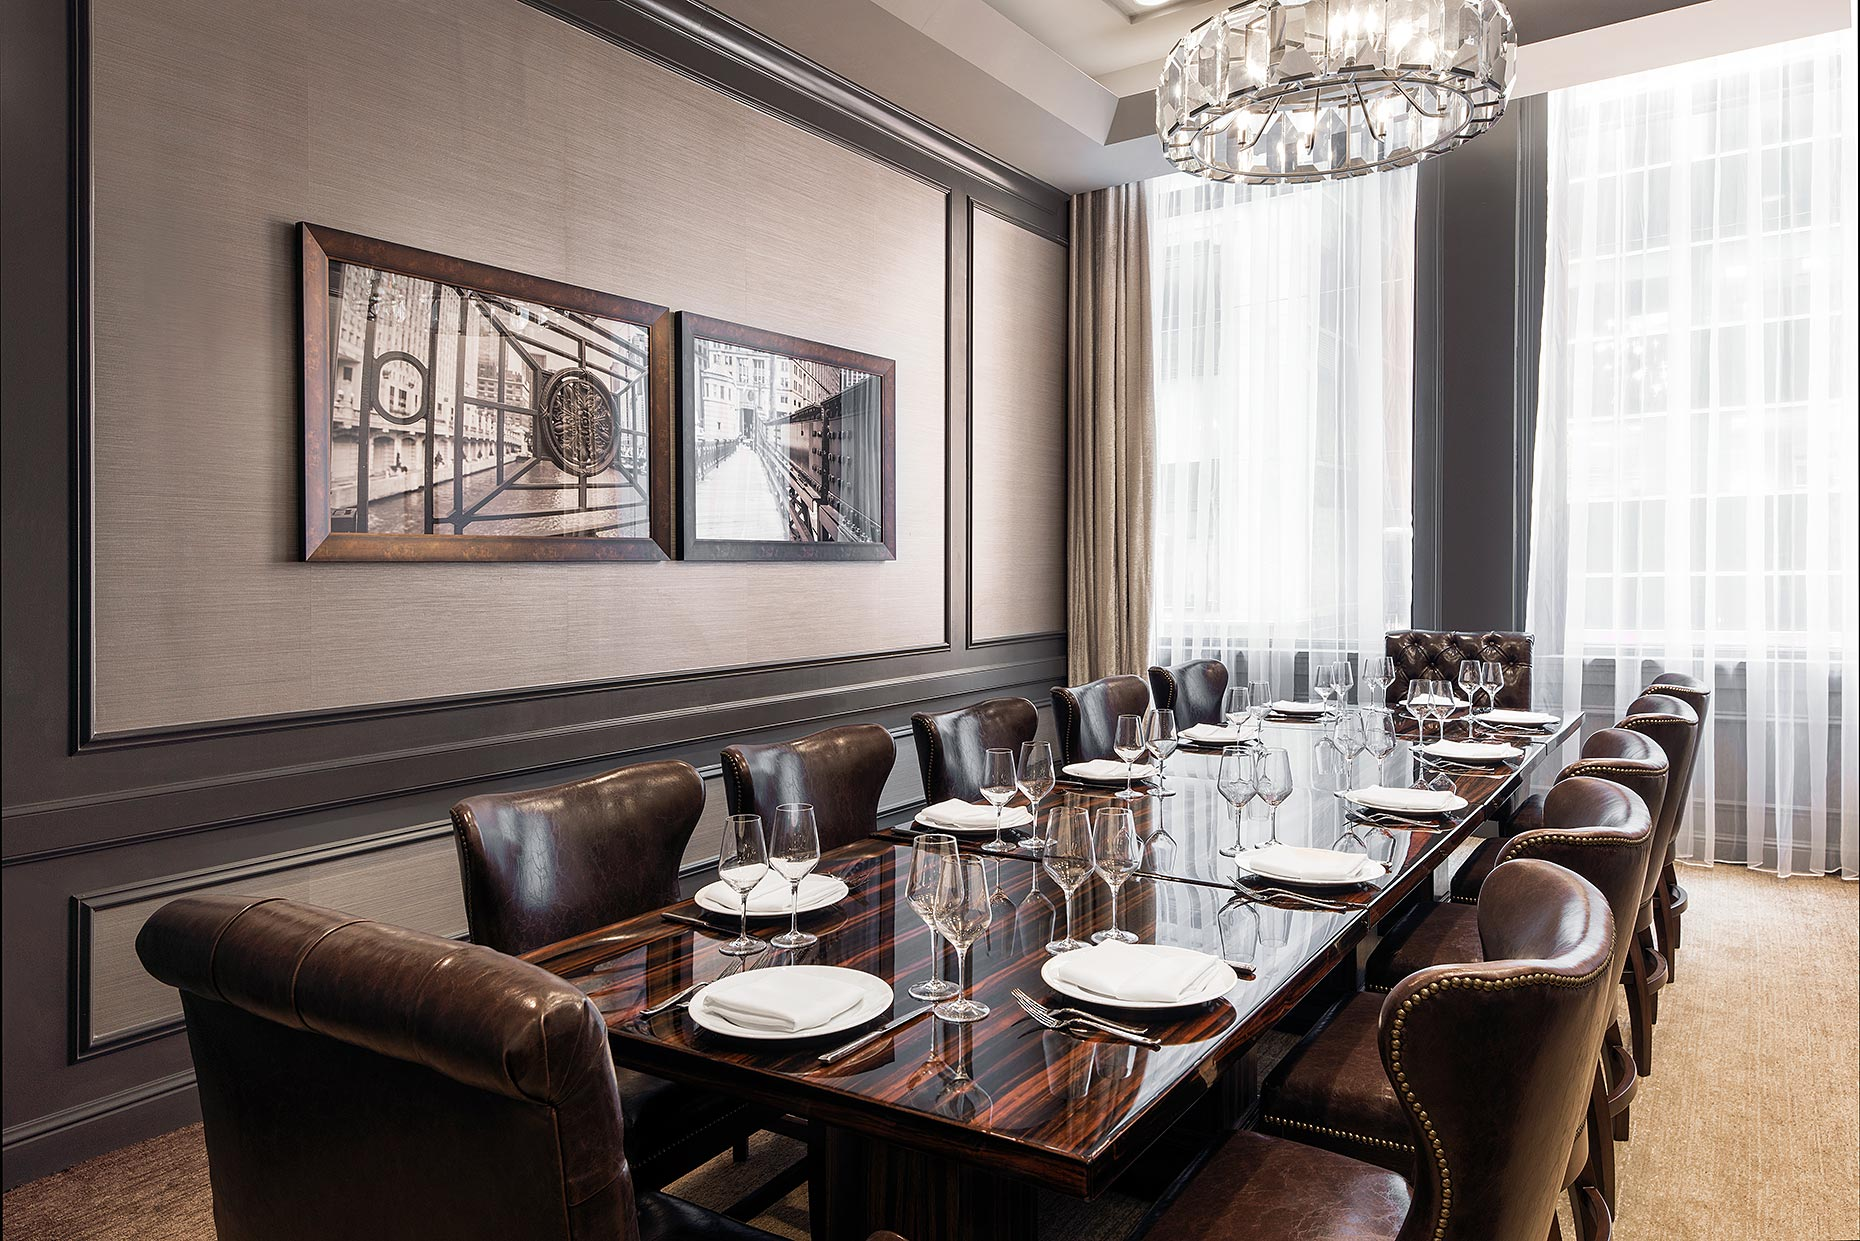 CHIRL_Private_Dining_Room1_dining_set_final